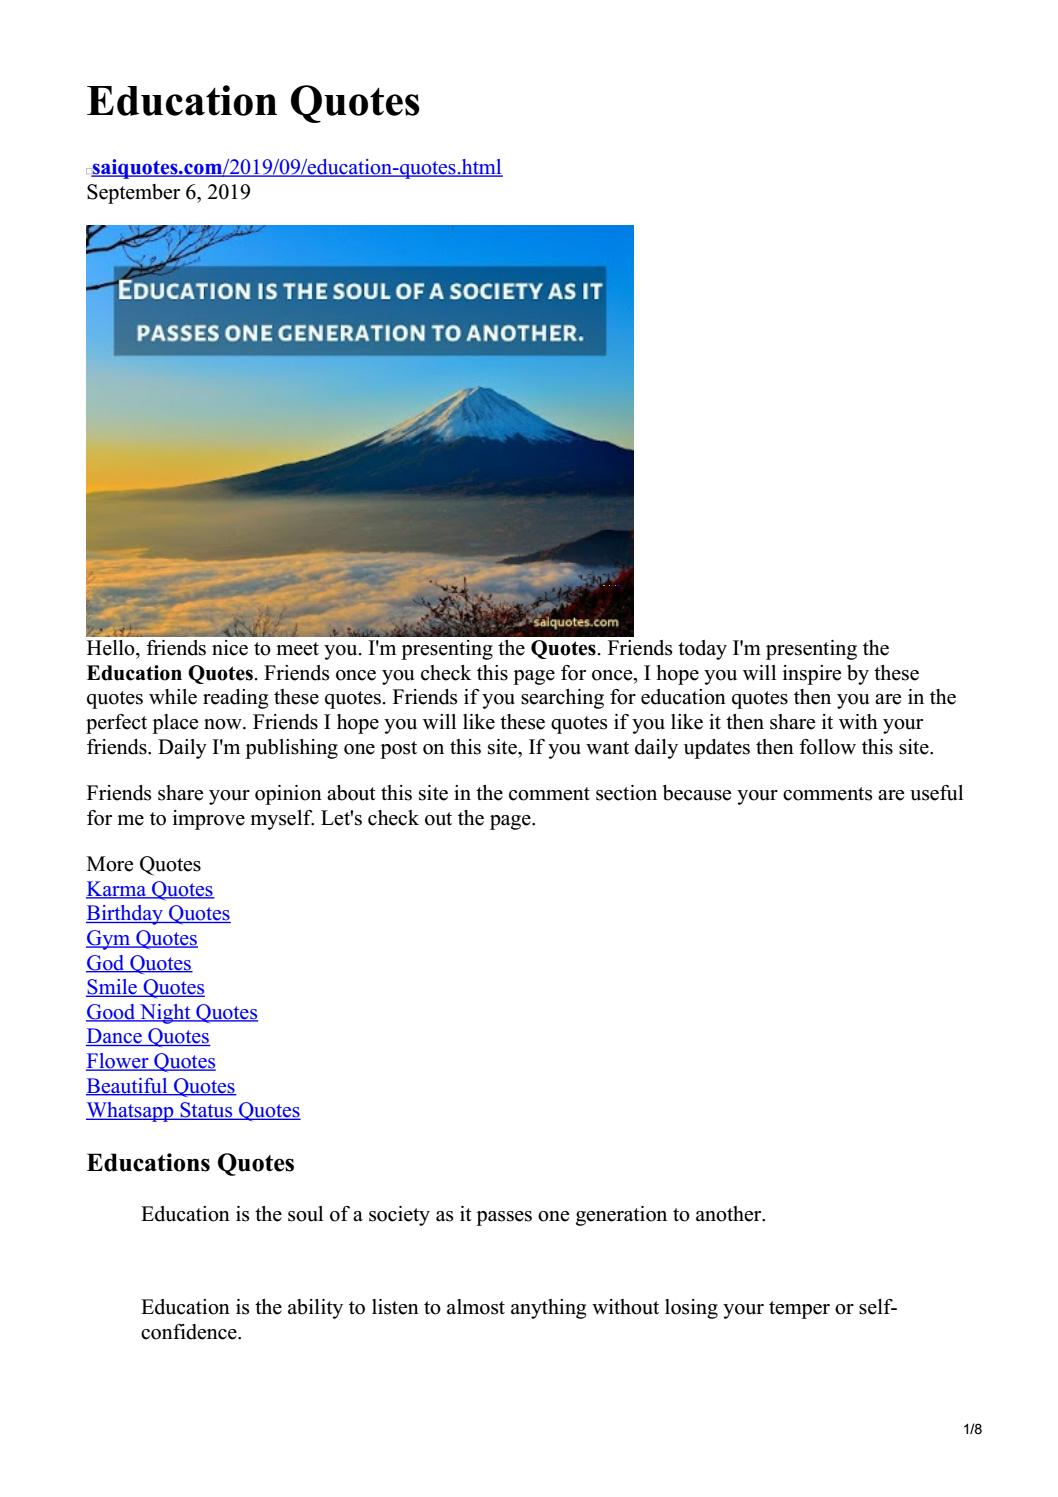 Education Quotes By Saiquotes Issuu